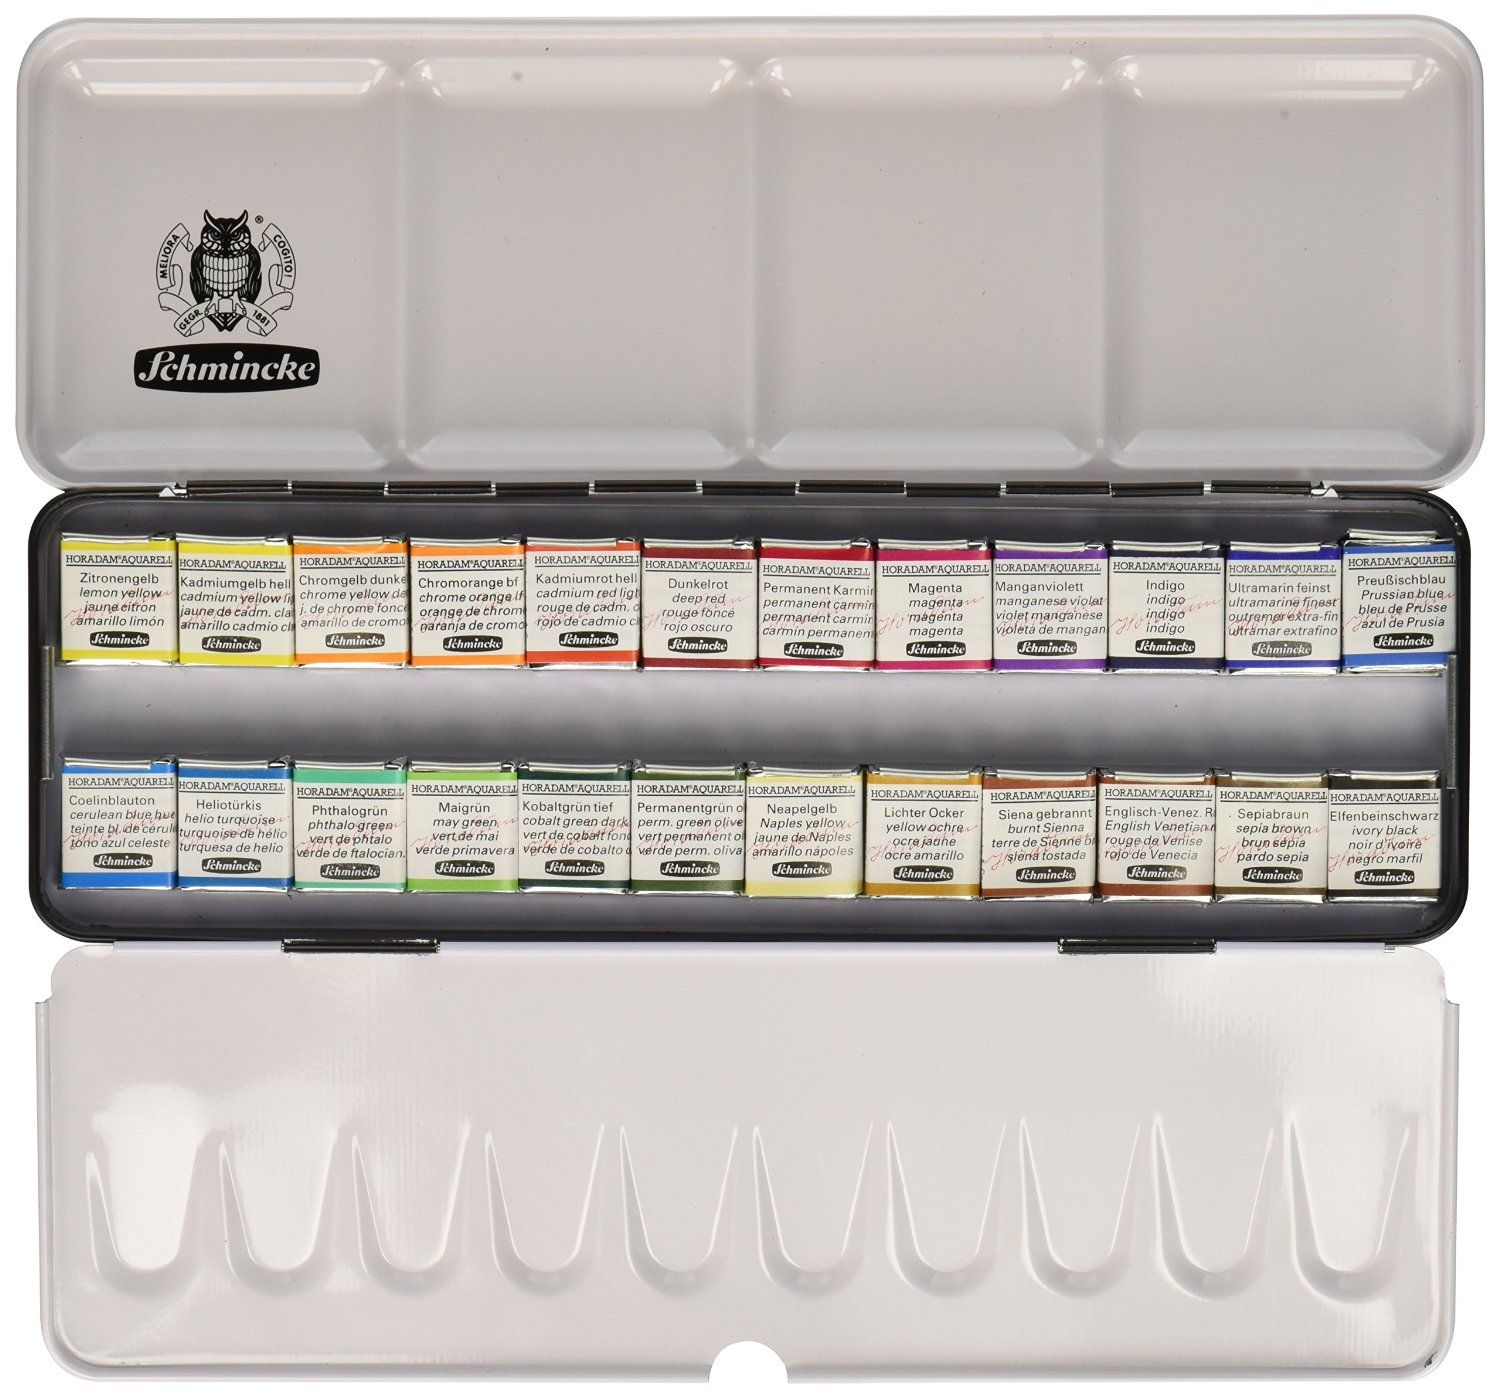 Schmincke Horadam Aquarell Watercolor Pan Sets Set Of 24